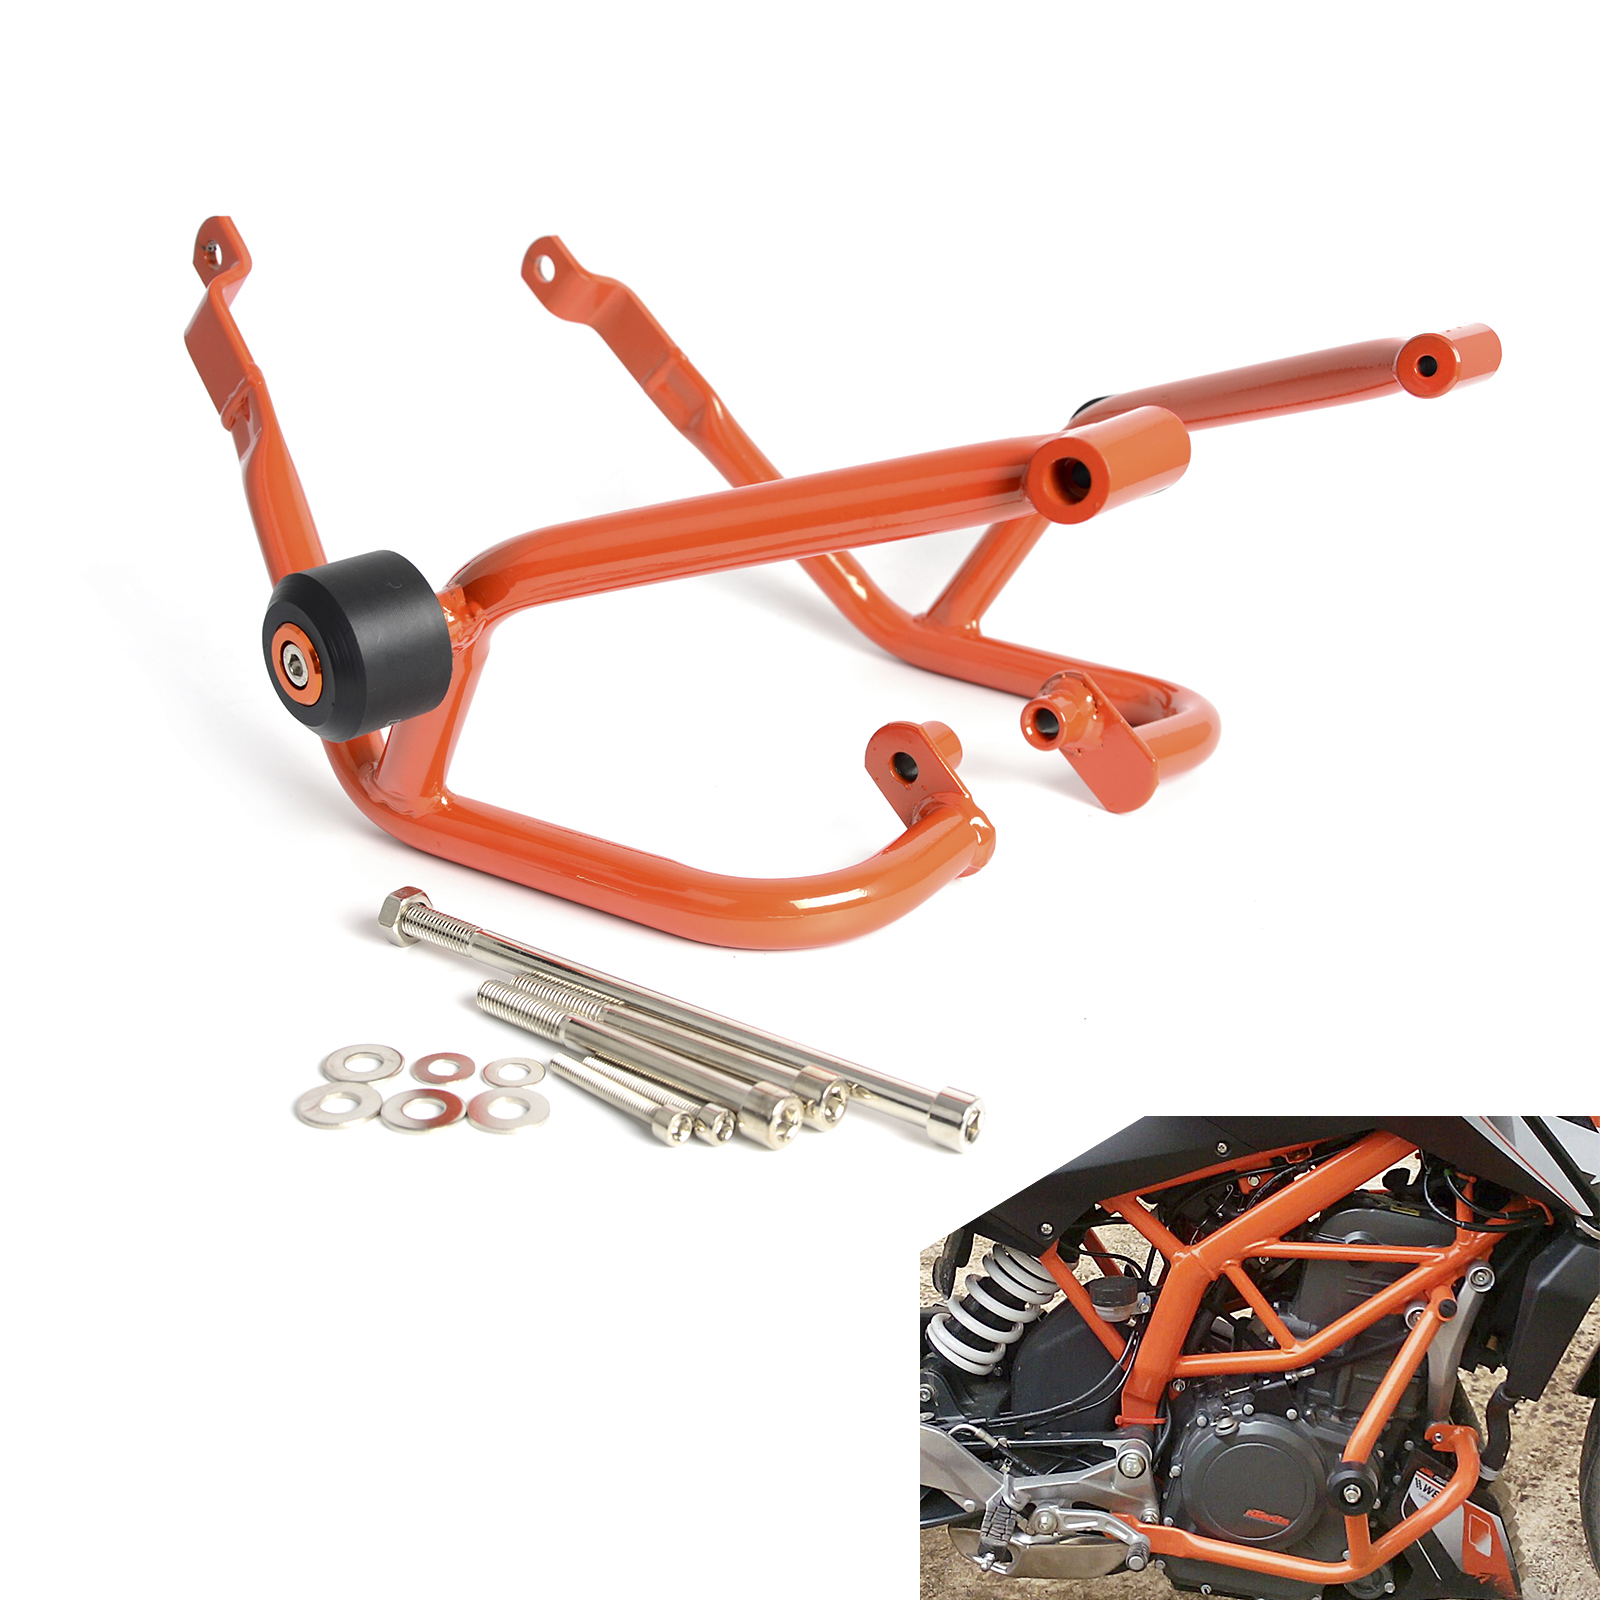 Motorcycle Engine Guard Crash Bars Frame Protector Bumper For KTM 125 200 Duke 2011 2012 2013 2014 2015 NEW engine bumper guard crash bars protector steel for yamaha mt09 mt 09 fz07 fz 09 2014 2016 2014 2015 2016 motorcycle